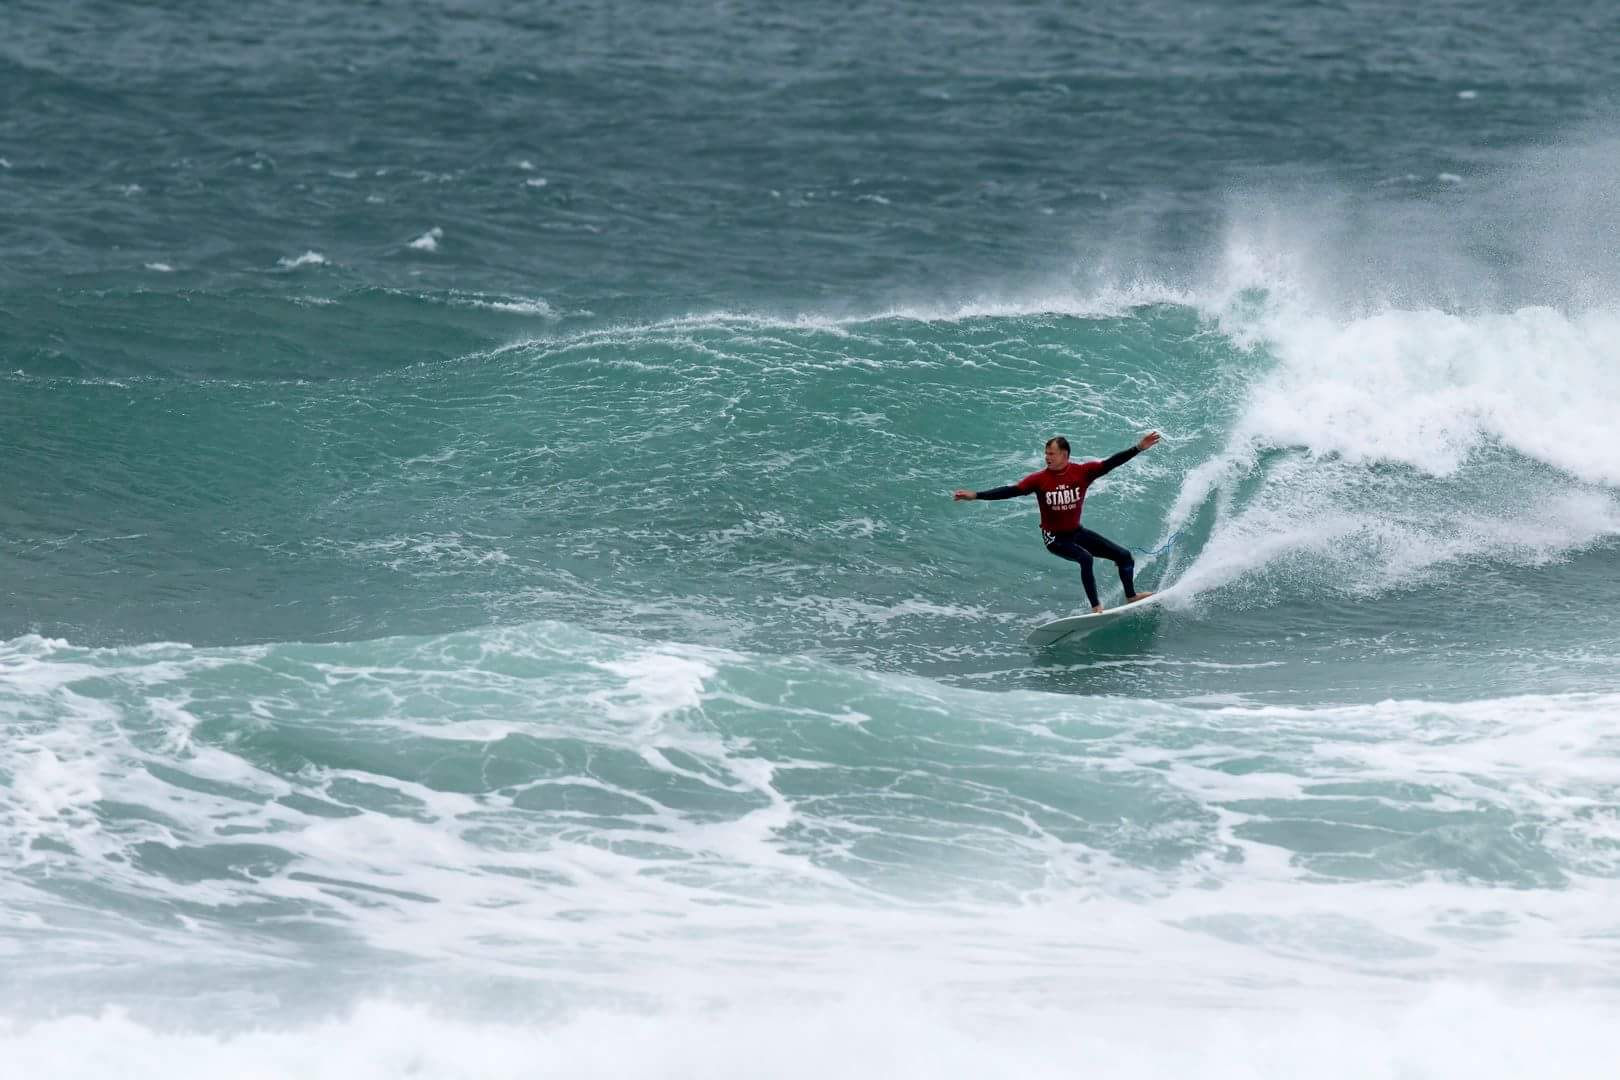 Adam Chell competing at The British Longboard Union, The Stable Fistral Classic #2